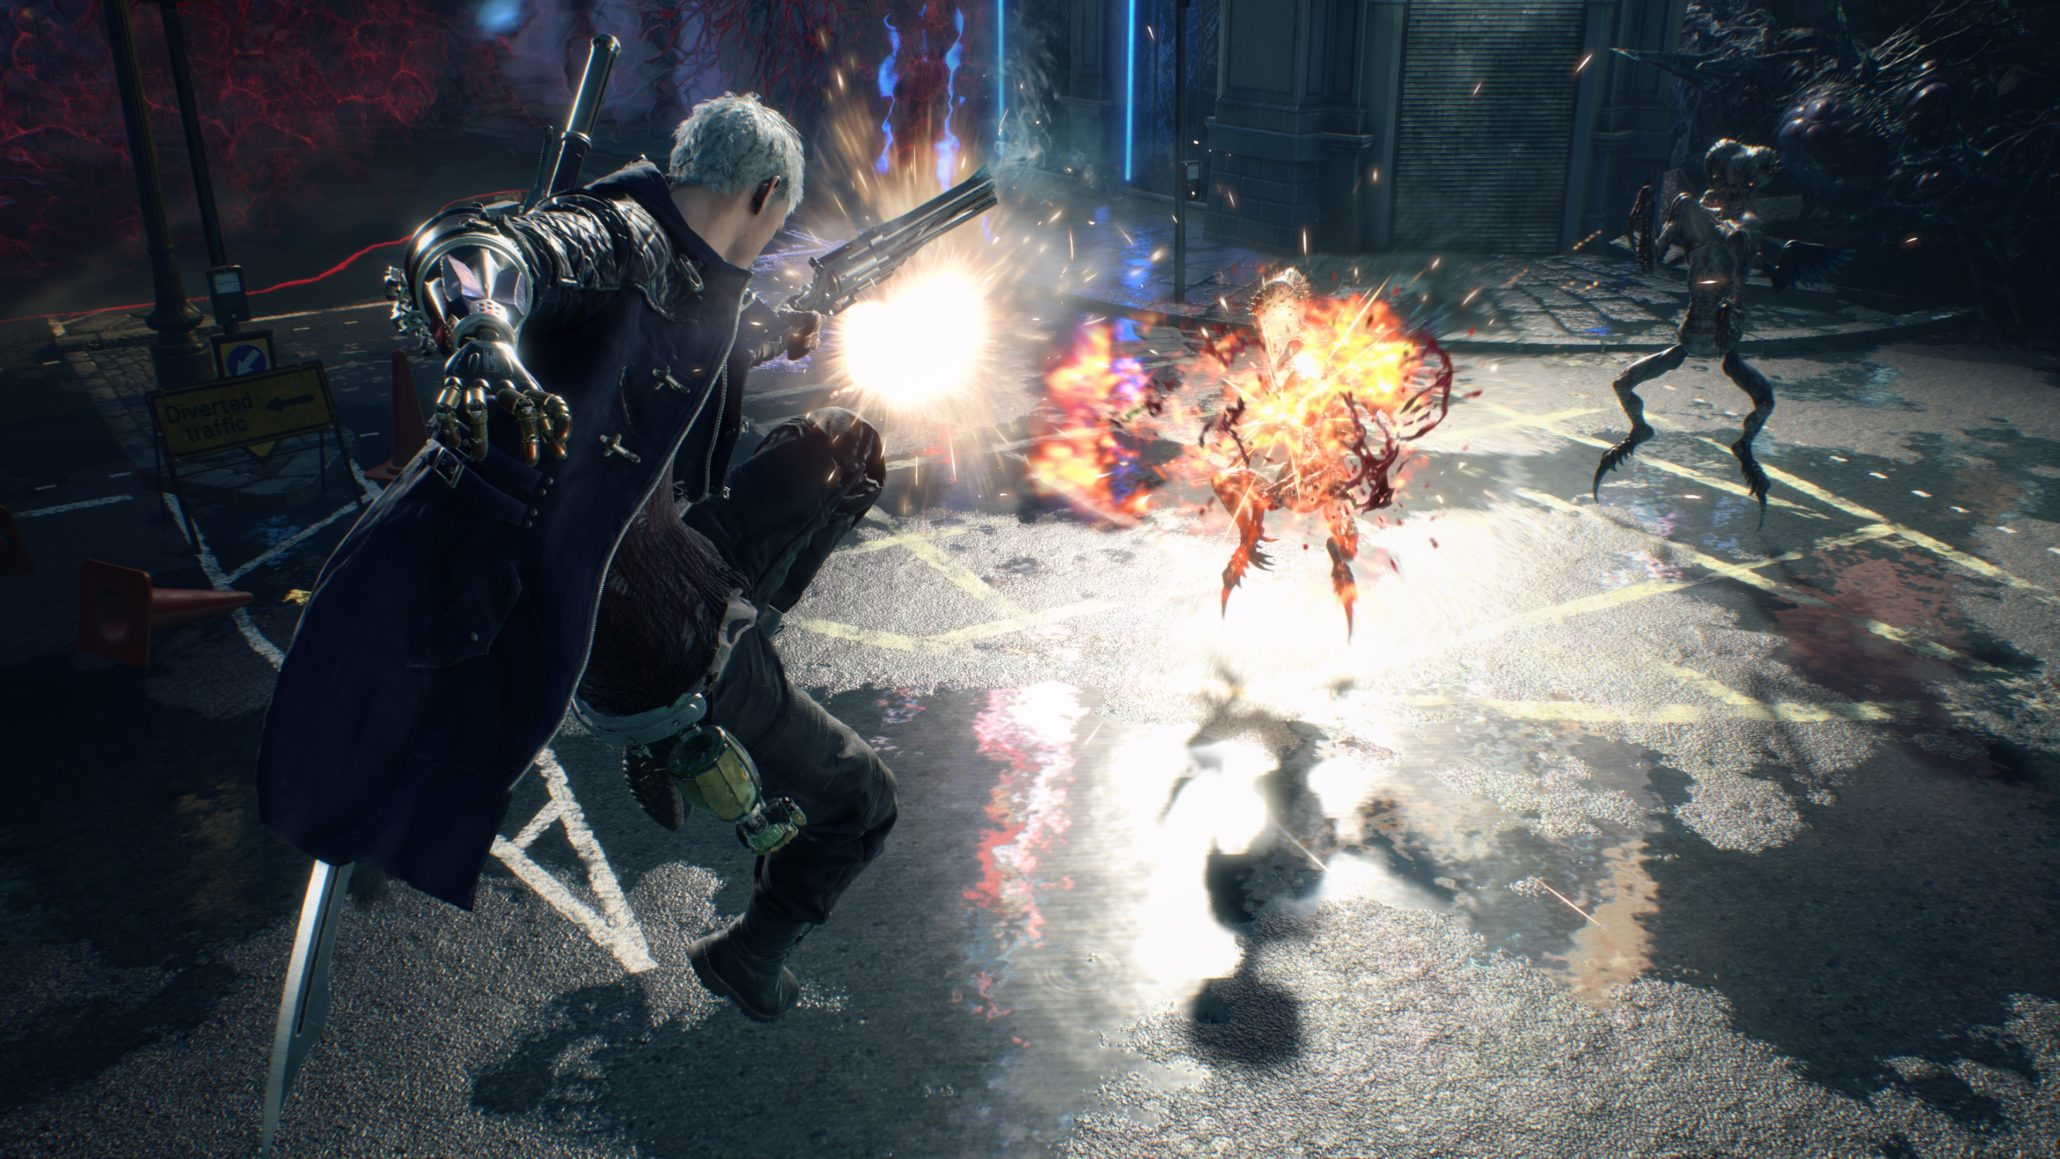 Alternating between attacks and chaining together combos will help you increase your Style Rank in Devil May Cry 5.